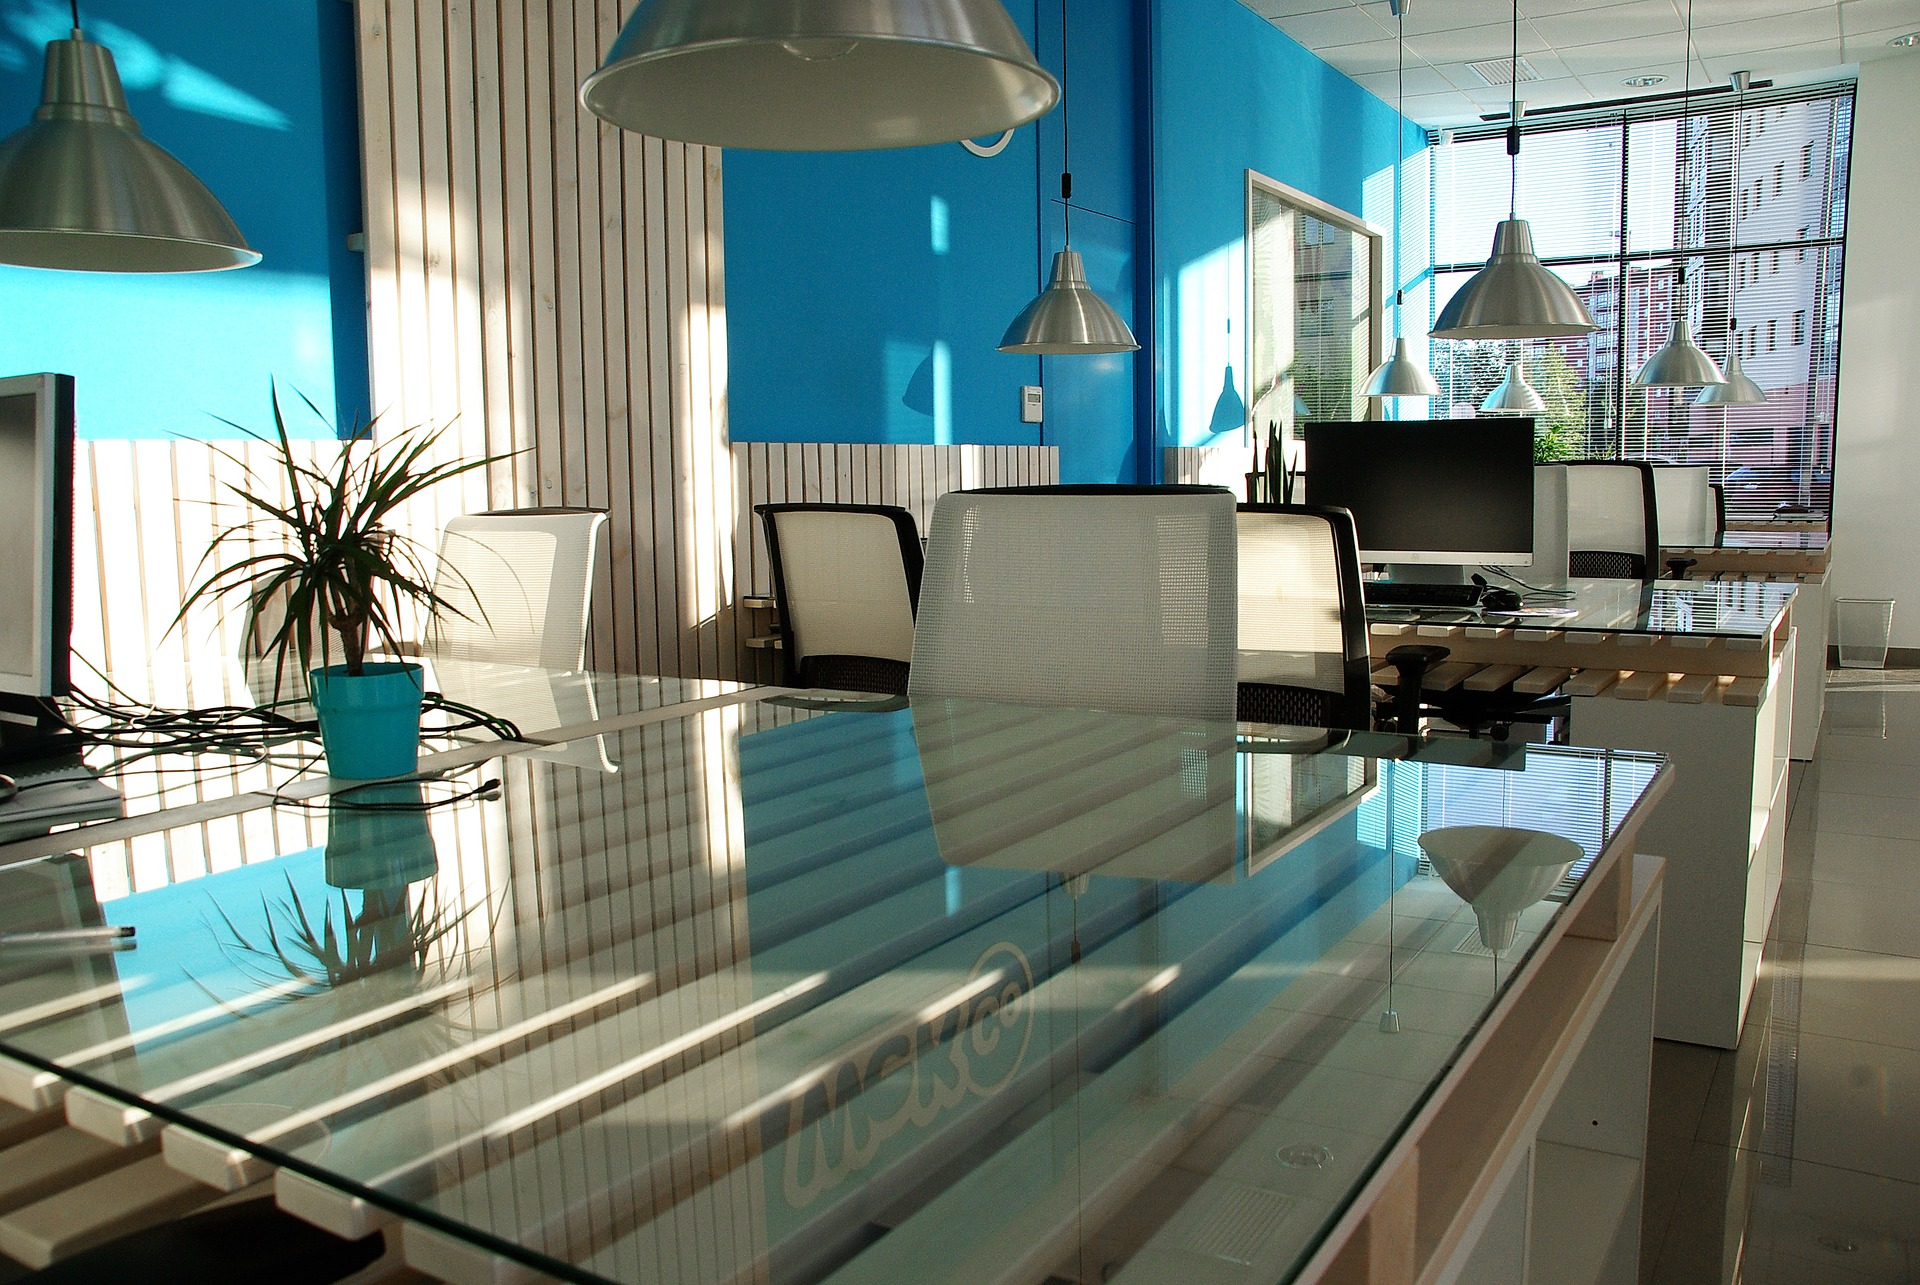 office-space-1744803_1920